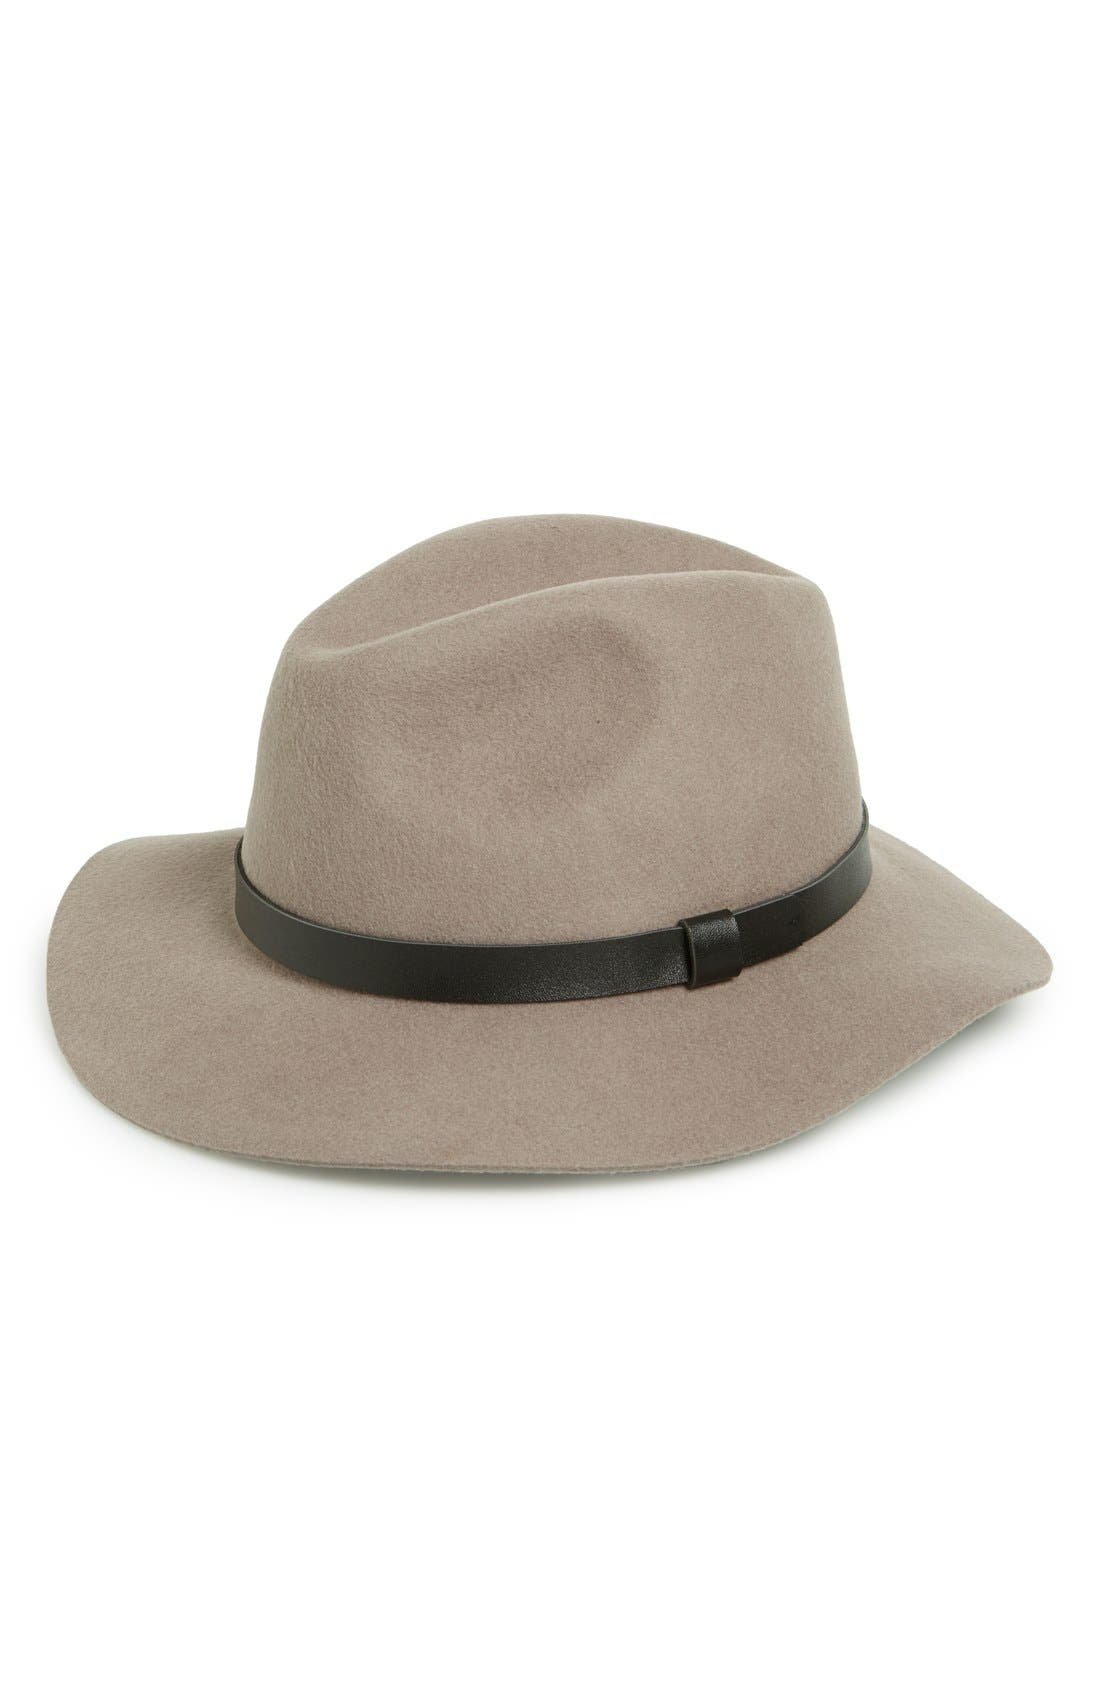 Alternate Image 1 Selected - Sole Society Wide Brim Fedora